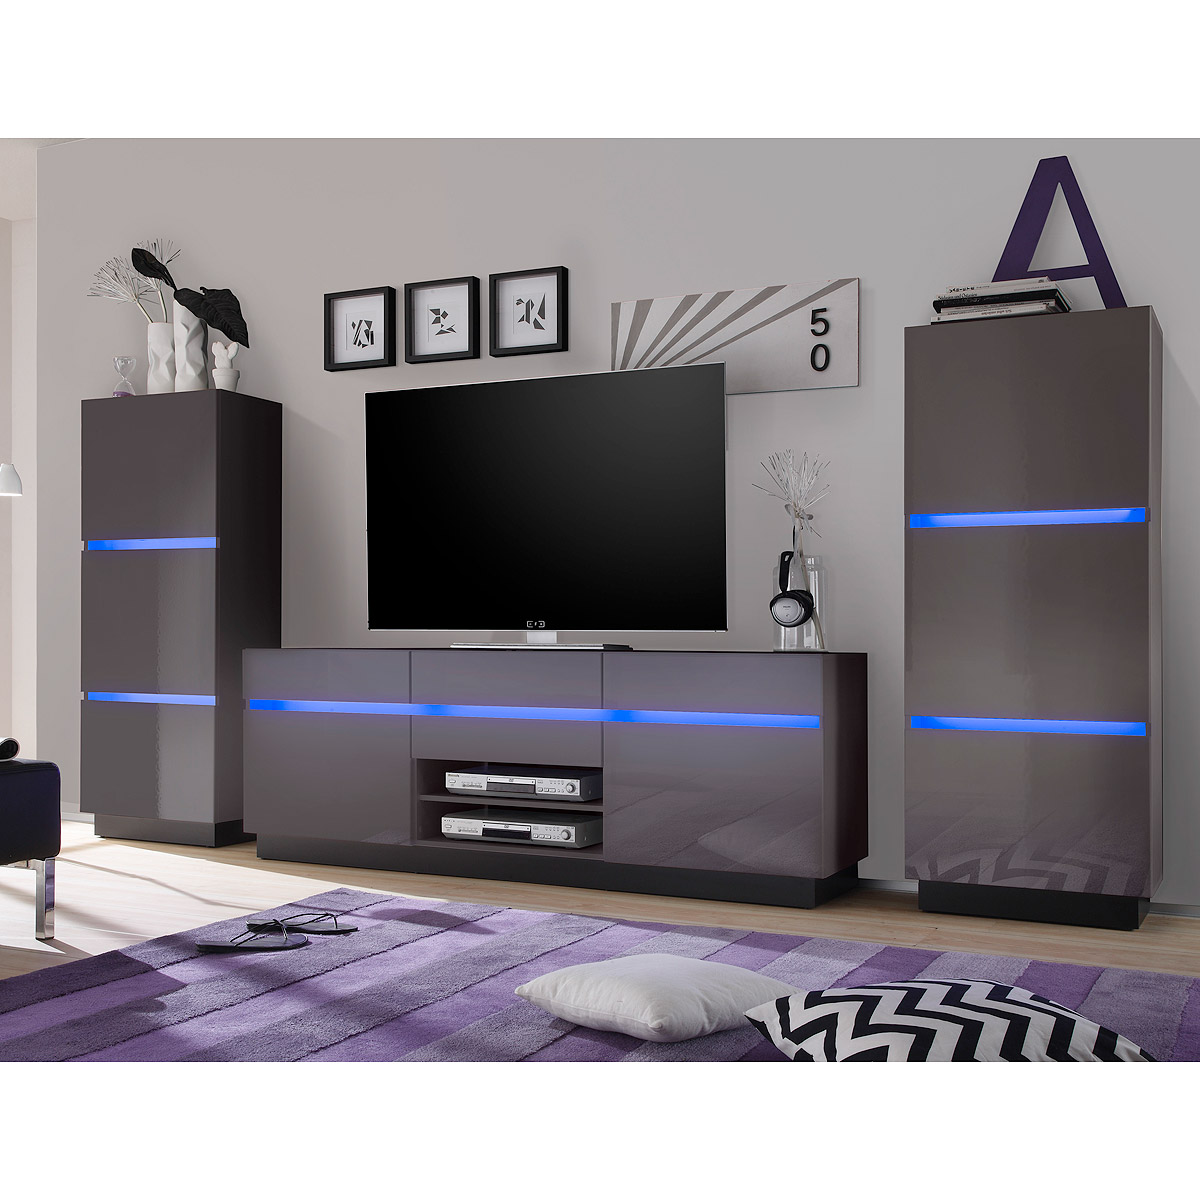 wohnwand 2 scaleo anbauwand wohnzimmer anthrazit hochglanz schwarz mit led ebay. Black Bedroom Furniture Sets. Home Design Ideas